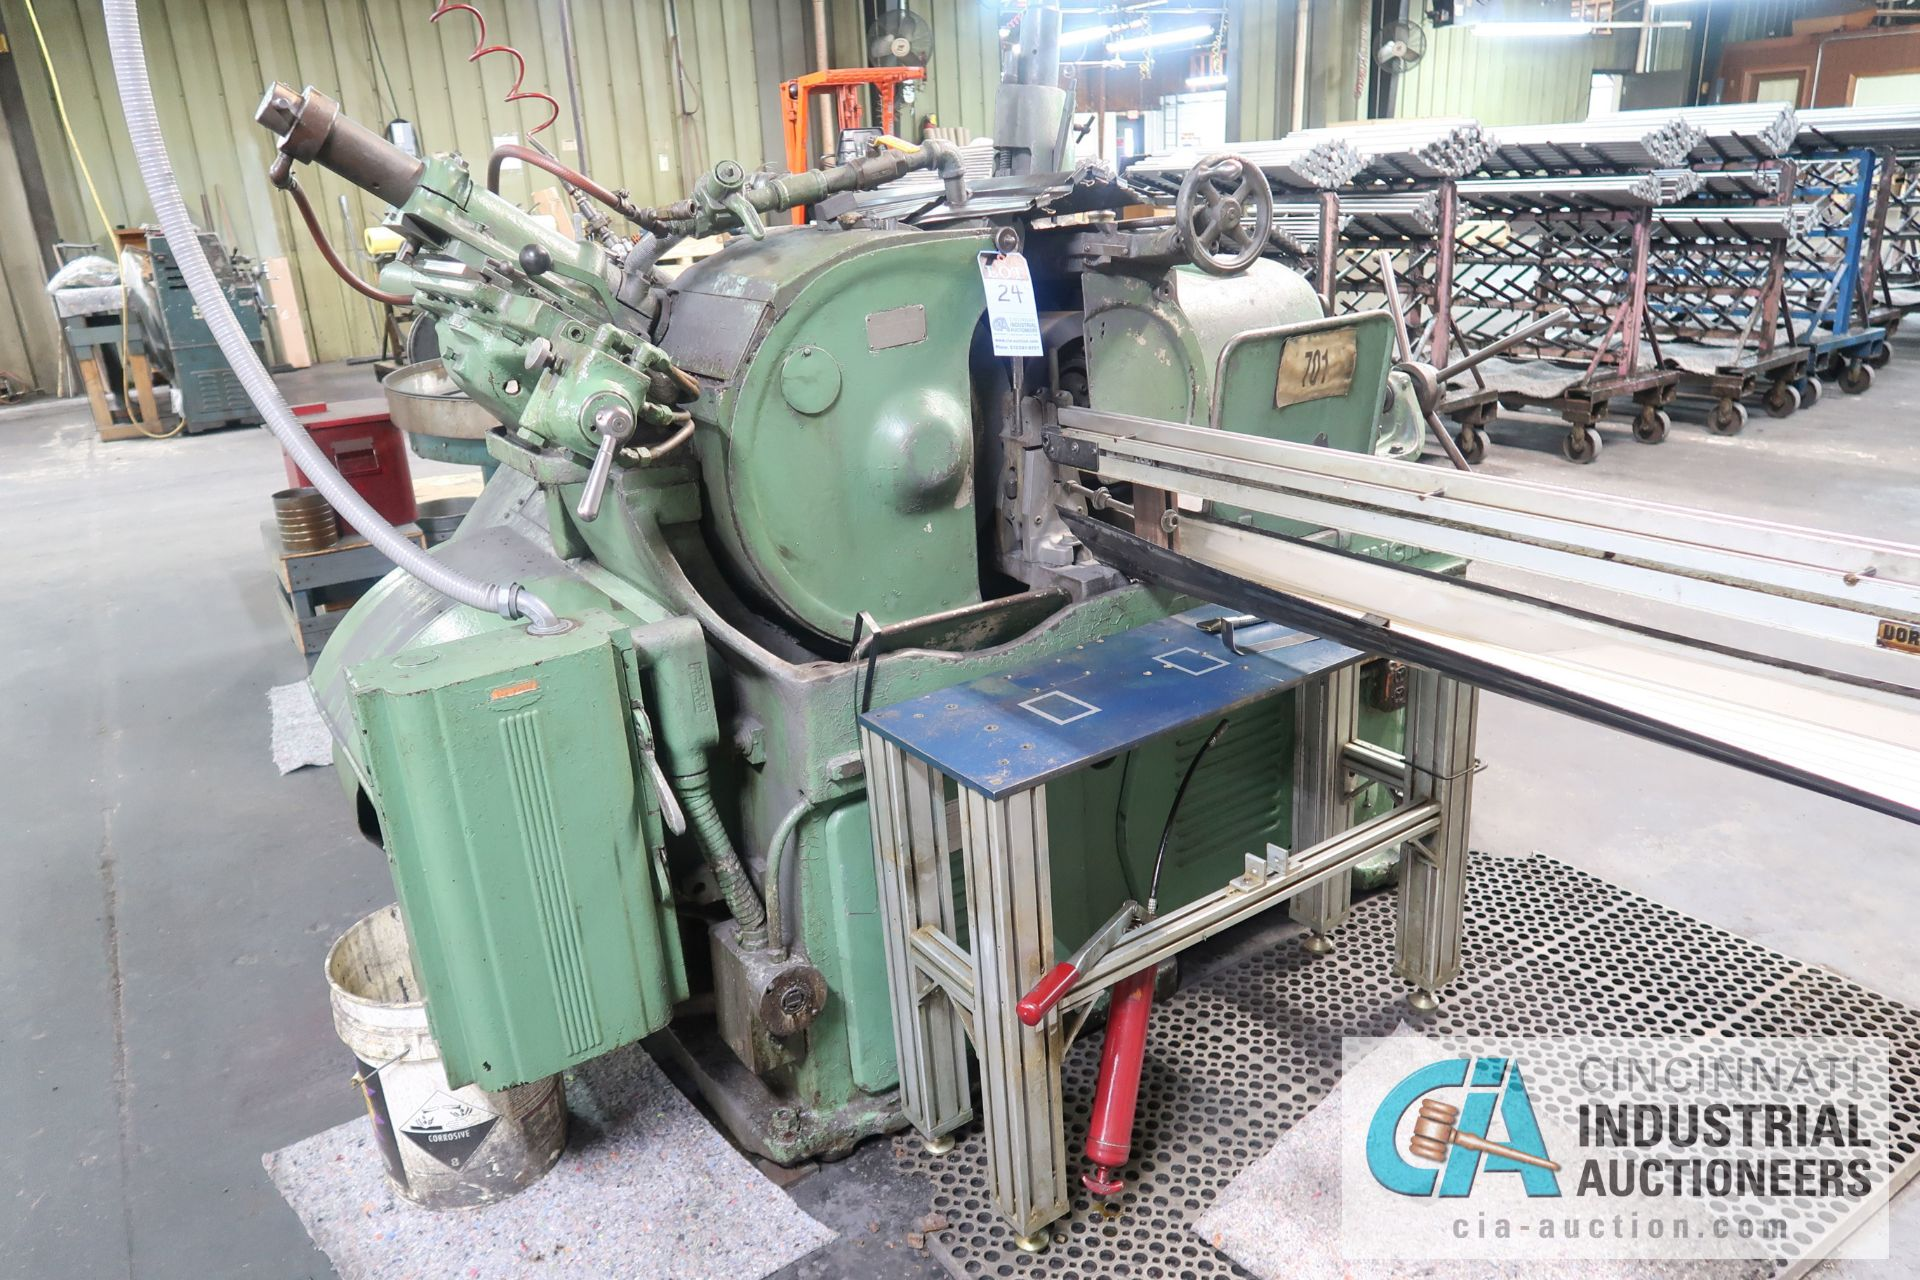 CINCINNATI MODEL 2 CENTERLESS GRINDER; S/N 2M2H1R-154 (NEW 1966) WITH INFEED AND OUTFEED CONVEYOR